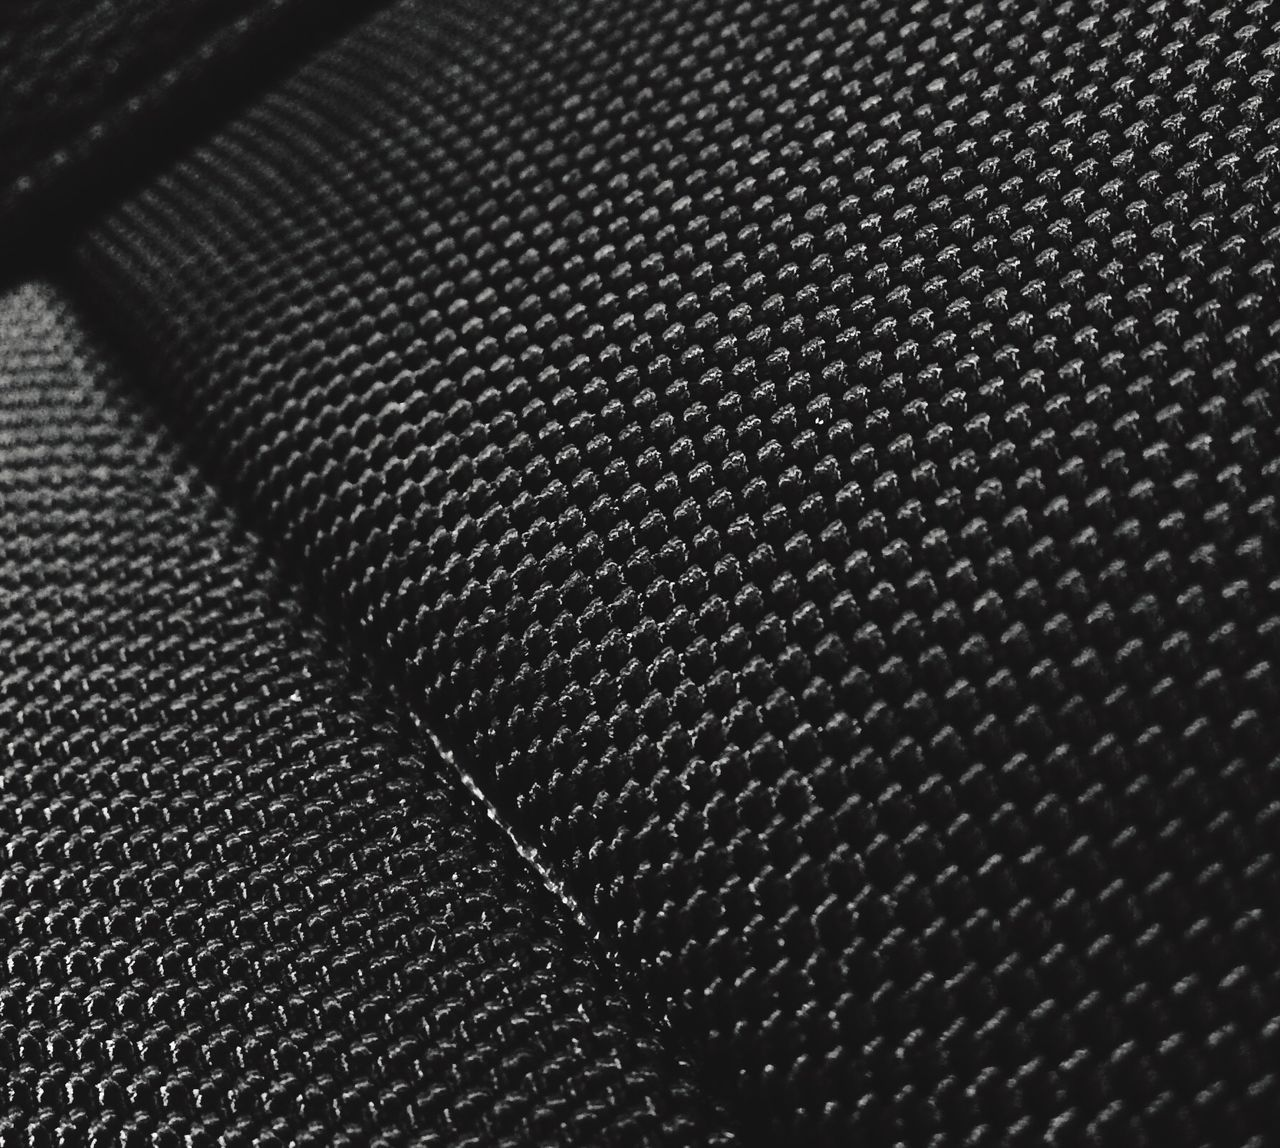 Close-up Blackandwhite Focus Texture Close Up Closeup Black And White Black & White Black&white Bag Fine Art Photography Showcase July Pivotal Ideas The Simple Things Monochrome Photography Maximum Closeness Welcome To Black